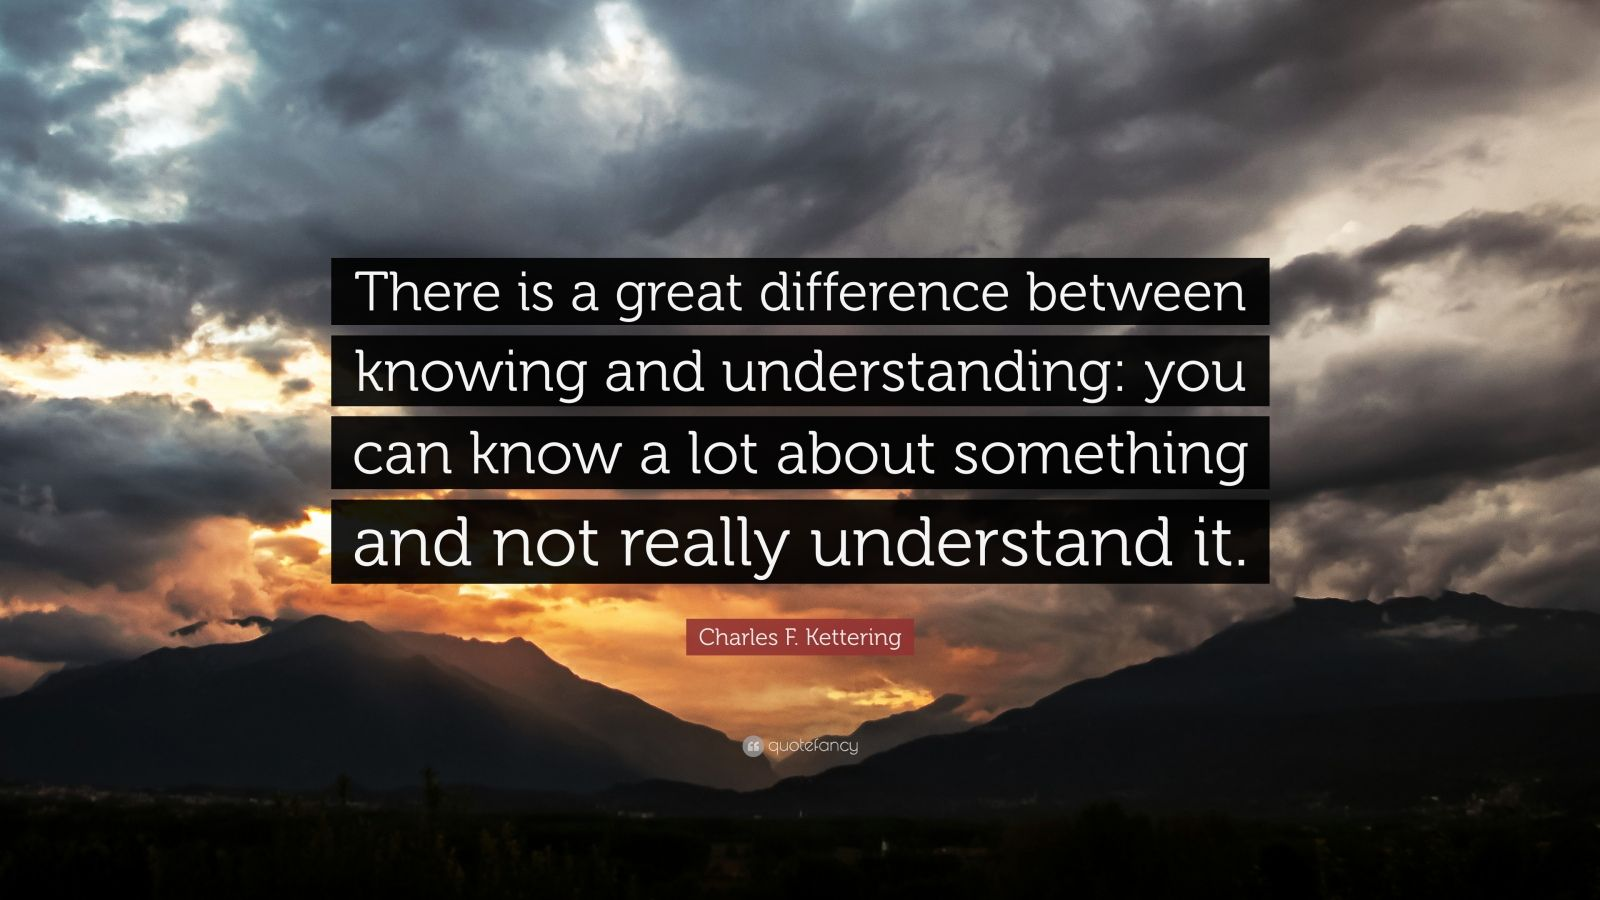 """Charles F. Kettering Quote: """"There is a great difference between knowing and understanding: you can know a lot about something and not really understand it."""""""